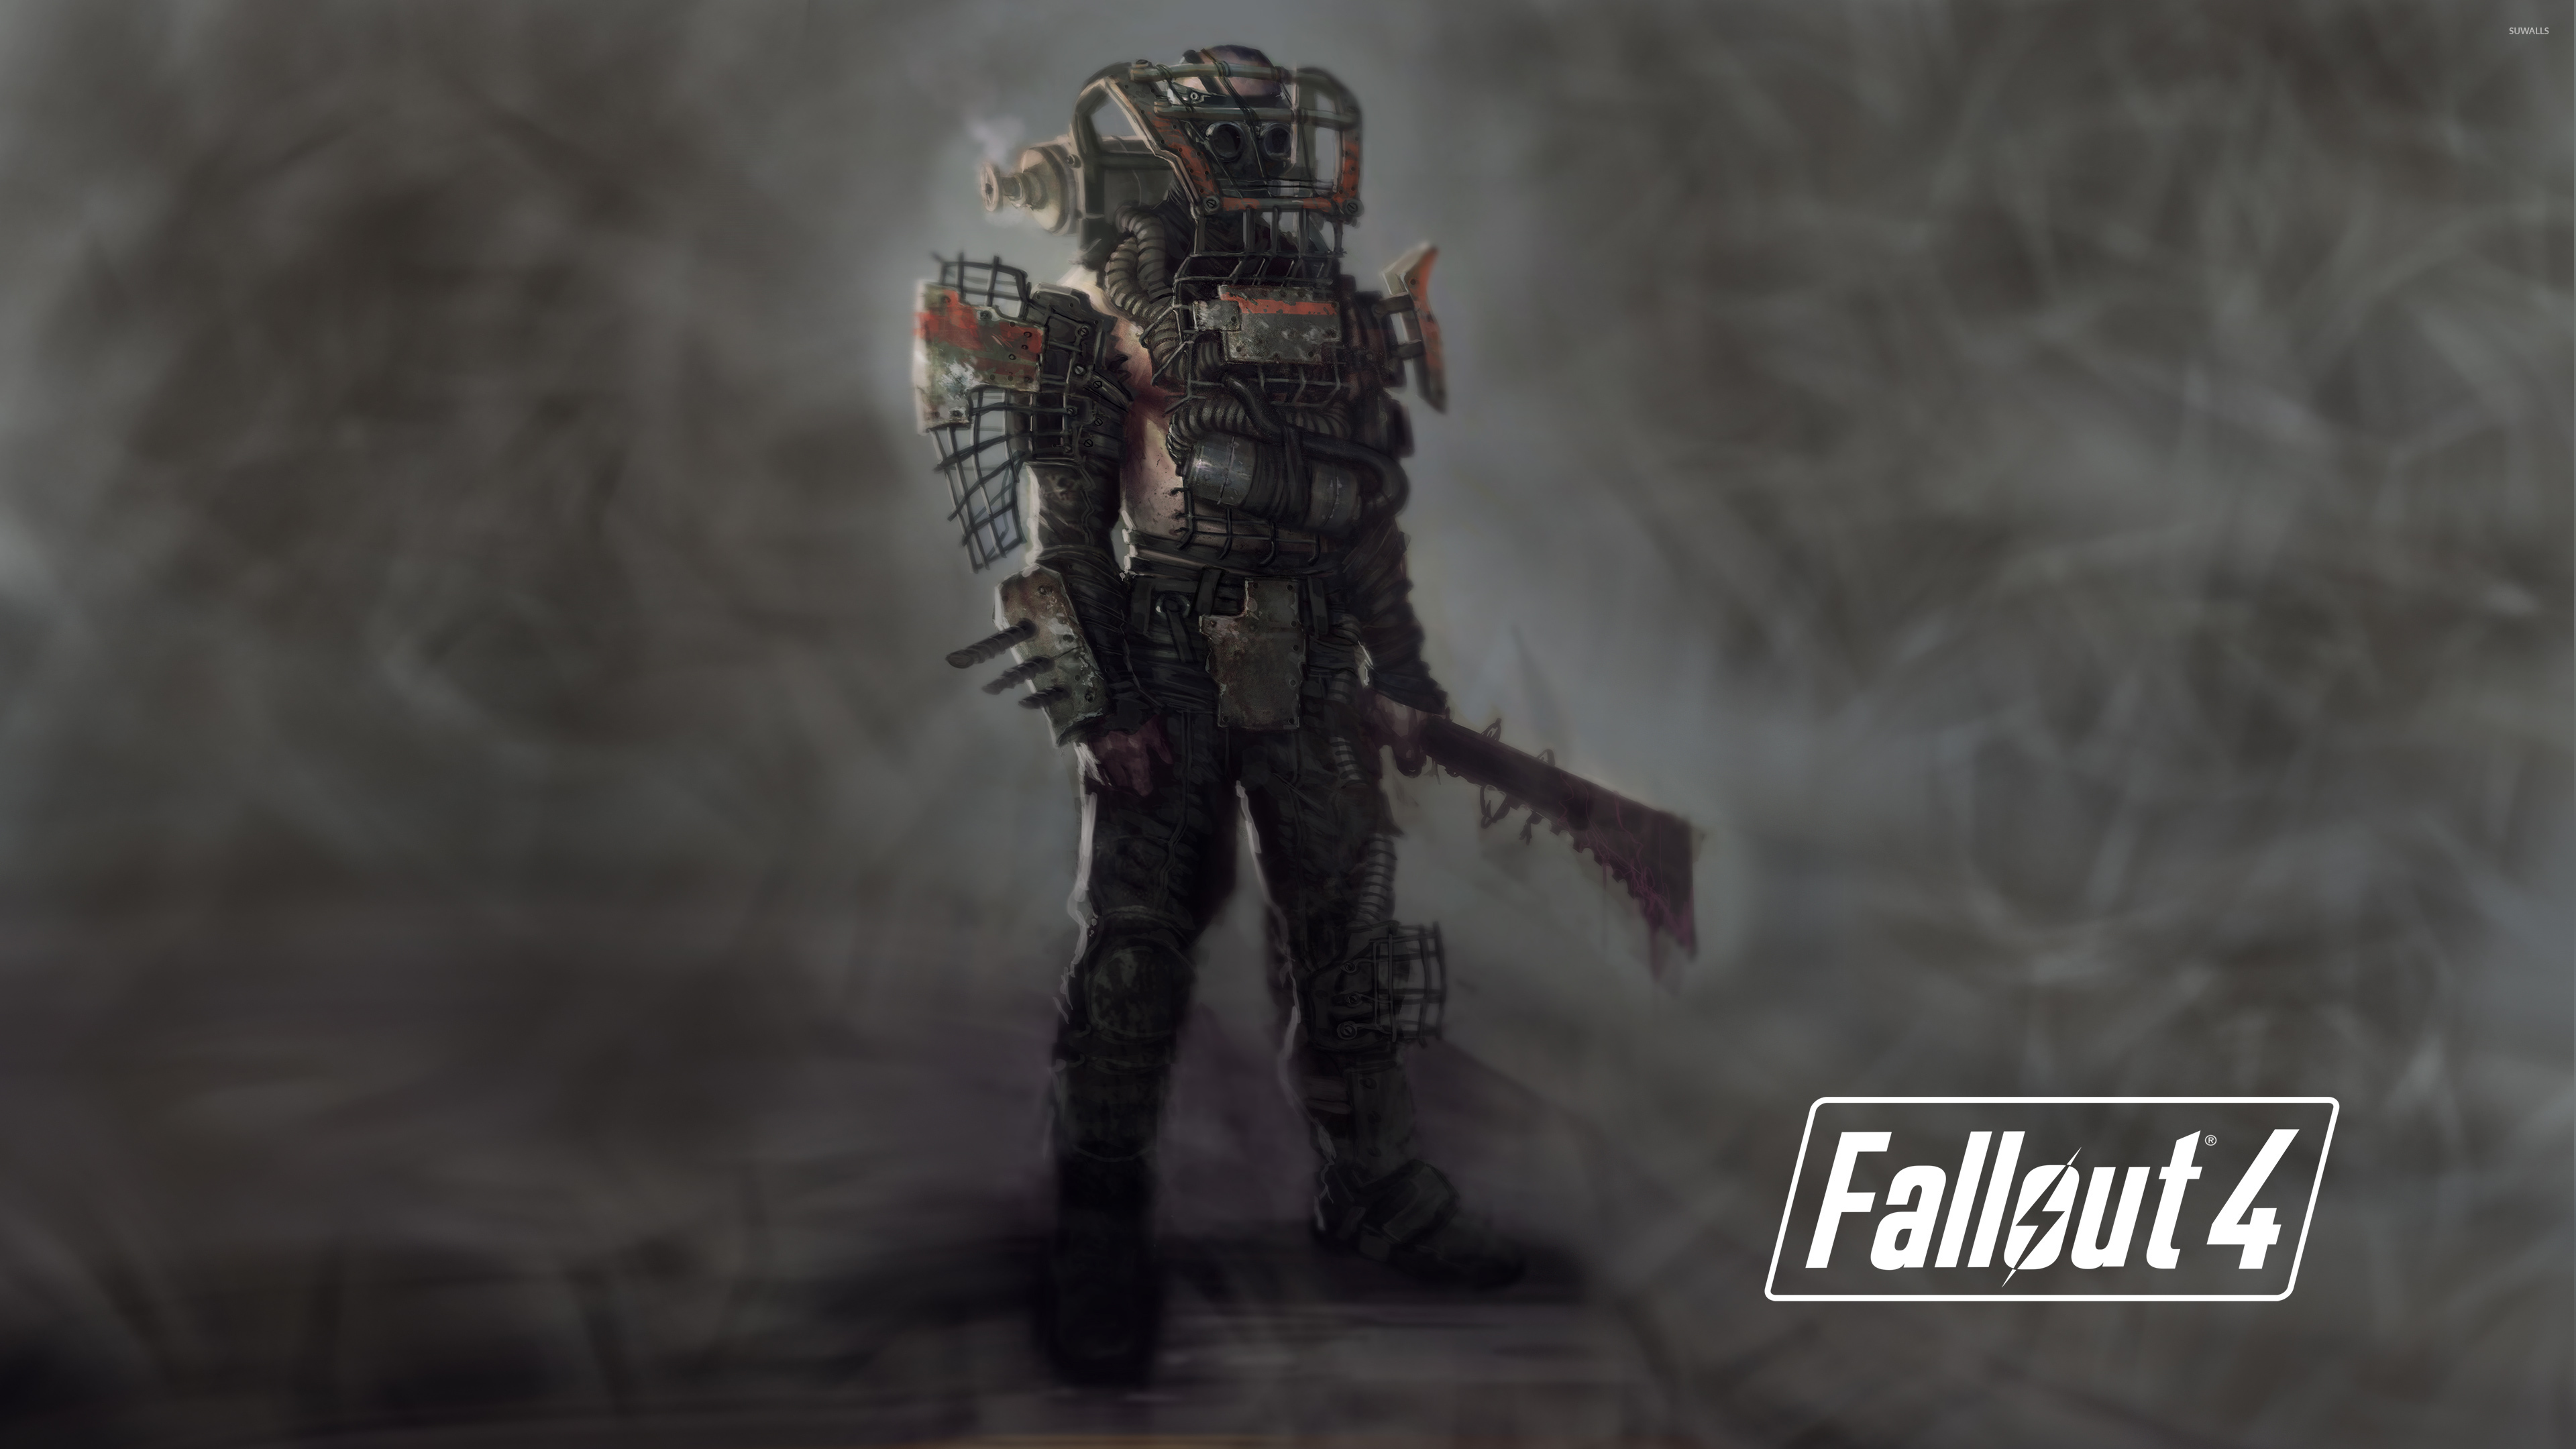 Fall Out Boy Game Wallpaper Raider In Fallout 4 Wallpaper Game Wallpapers 50130